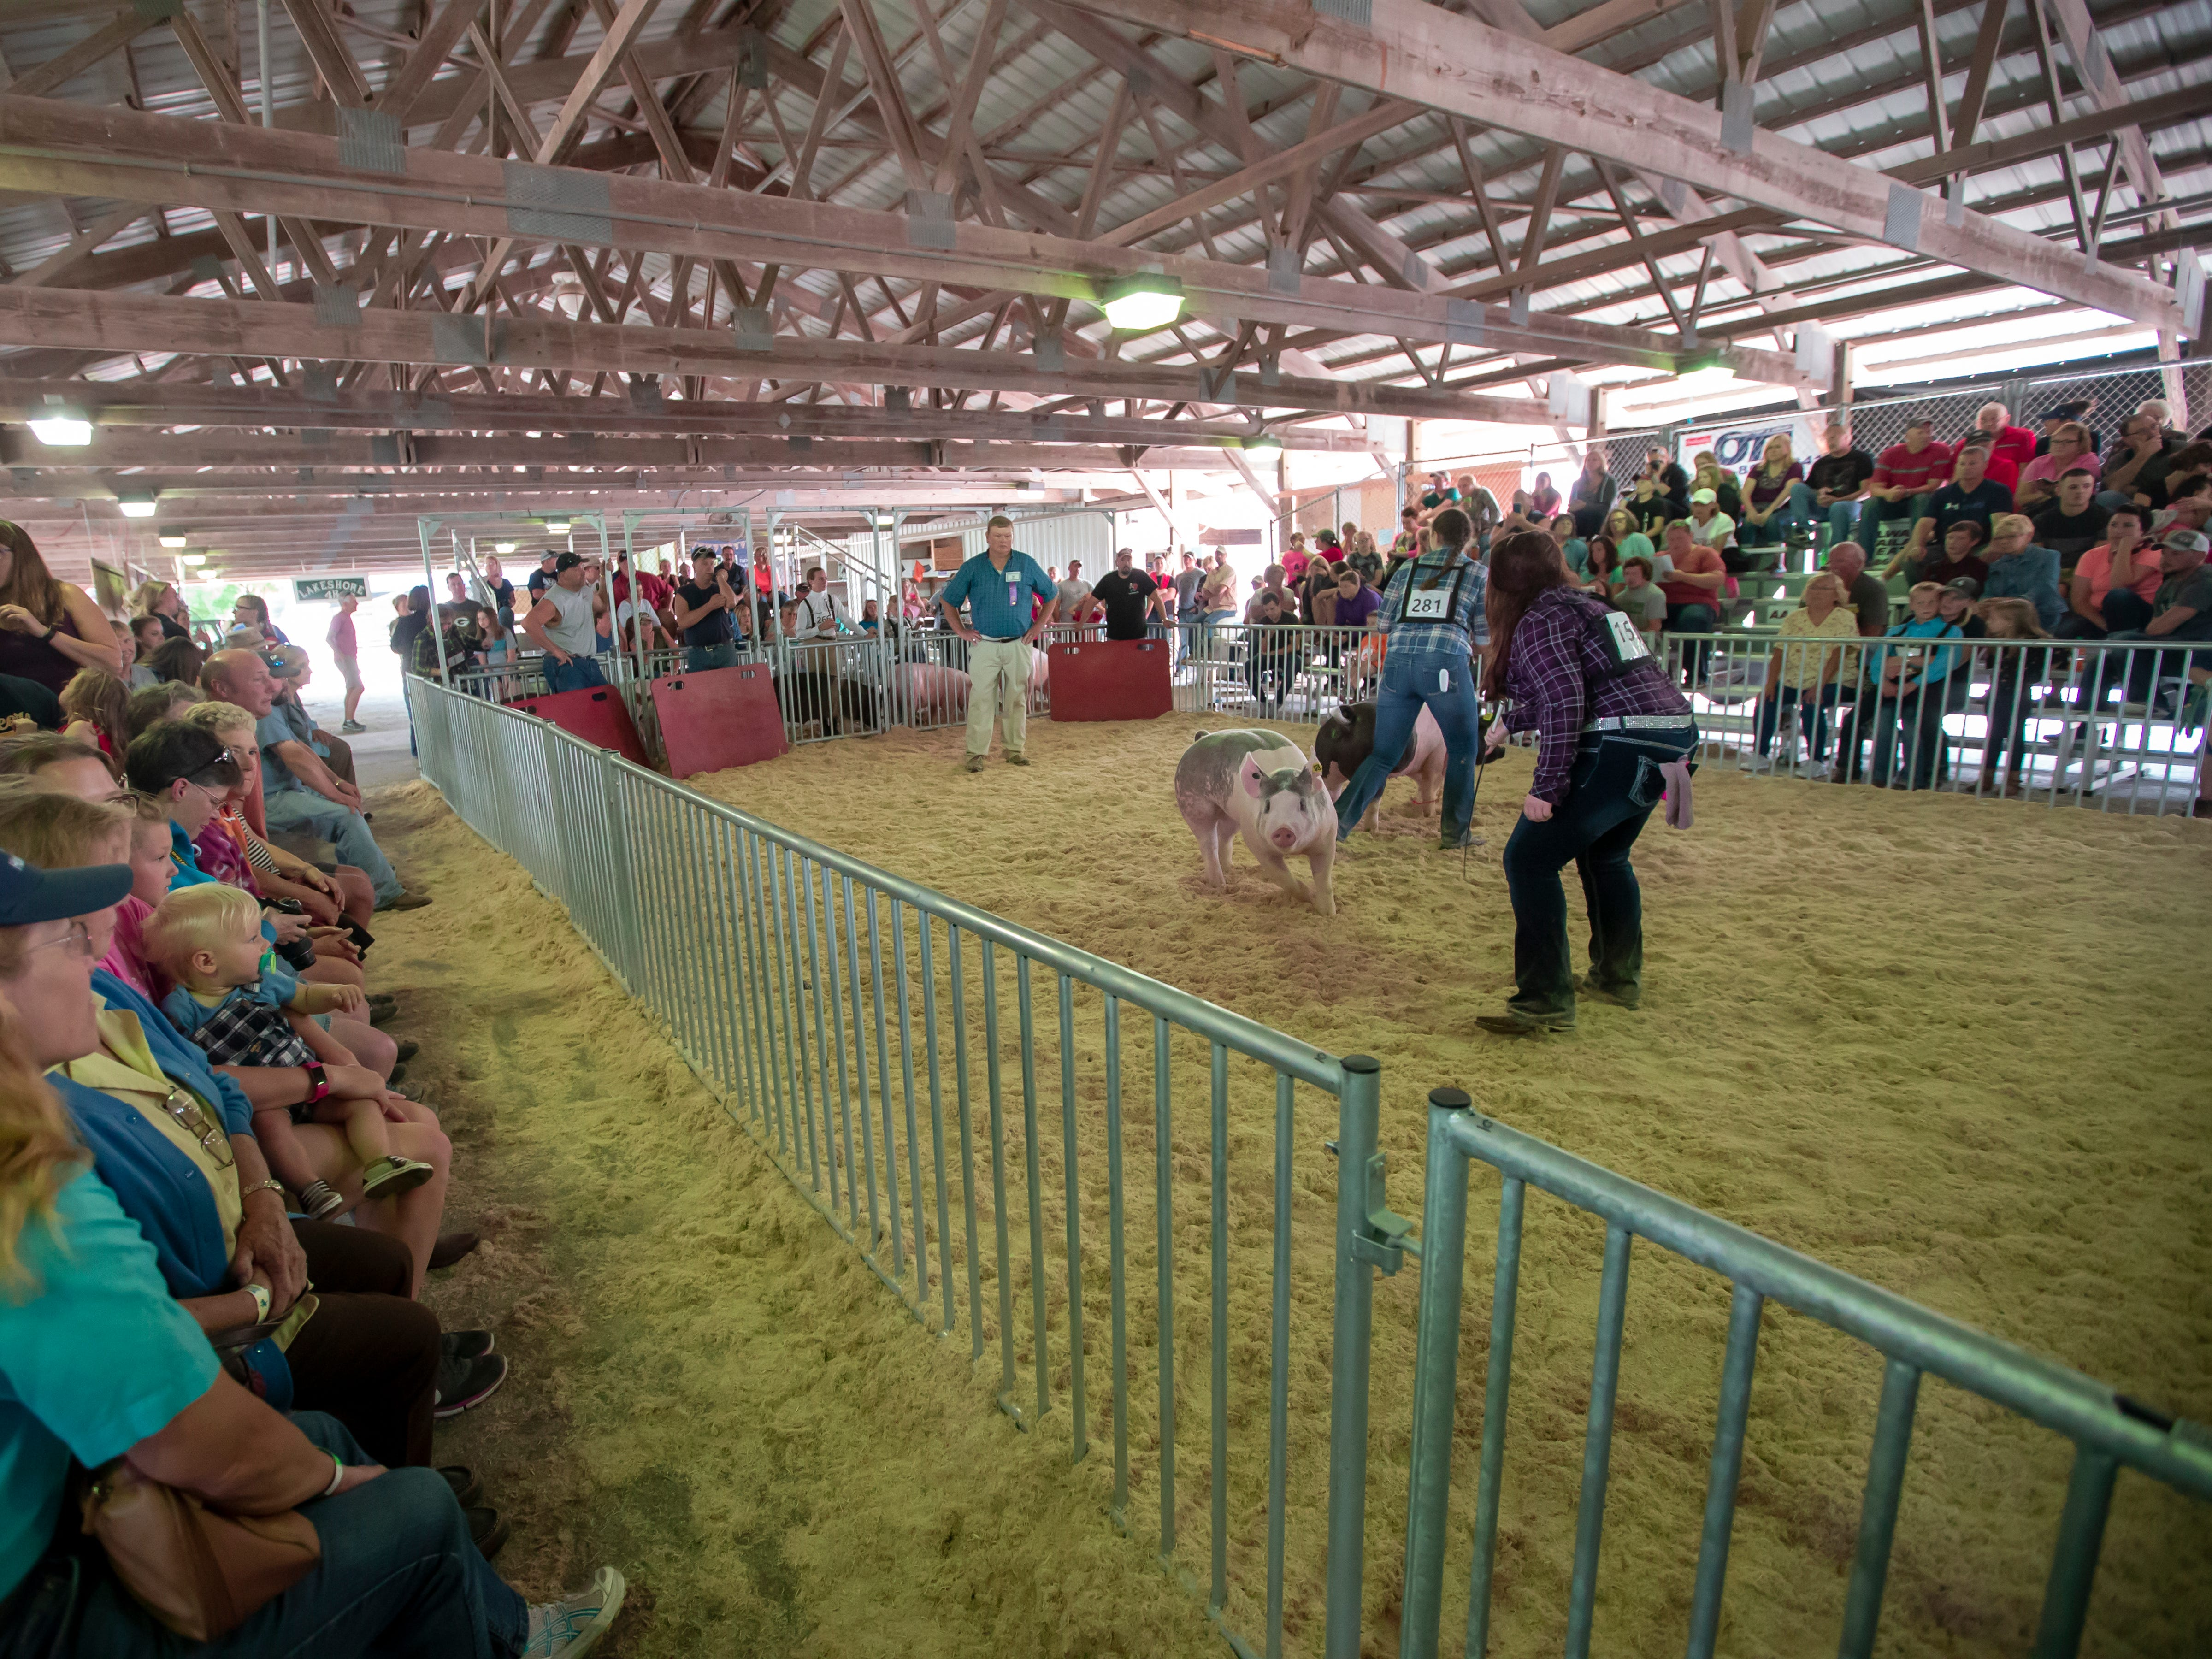 4-H kids take turns showing their pigs during the Winnebago County Fair 4-H swine show on Friday, Aug. 3, 2018.